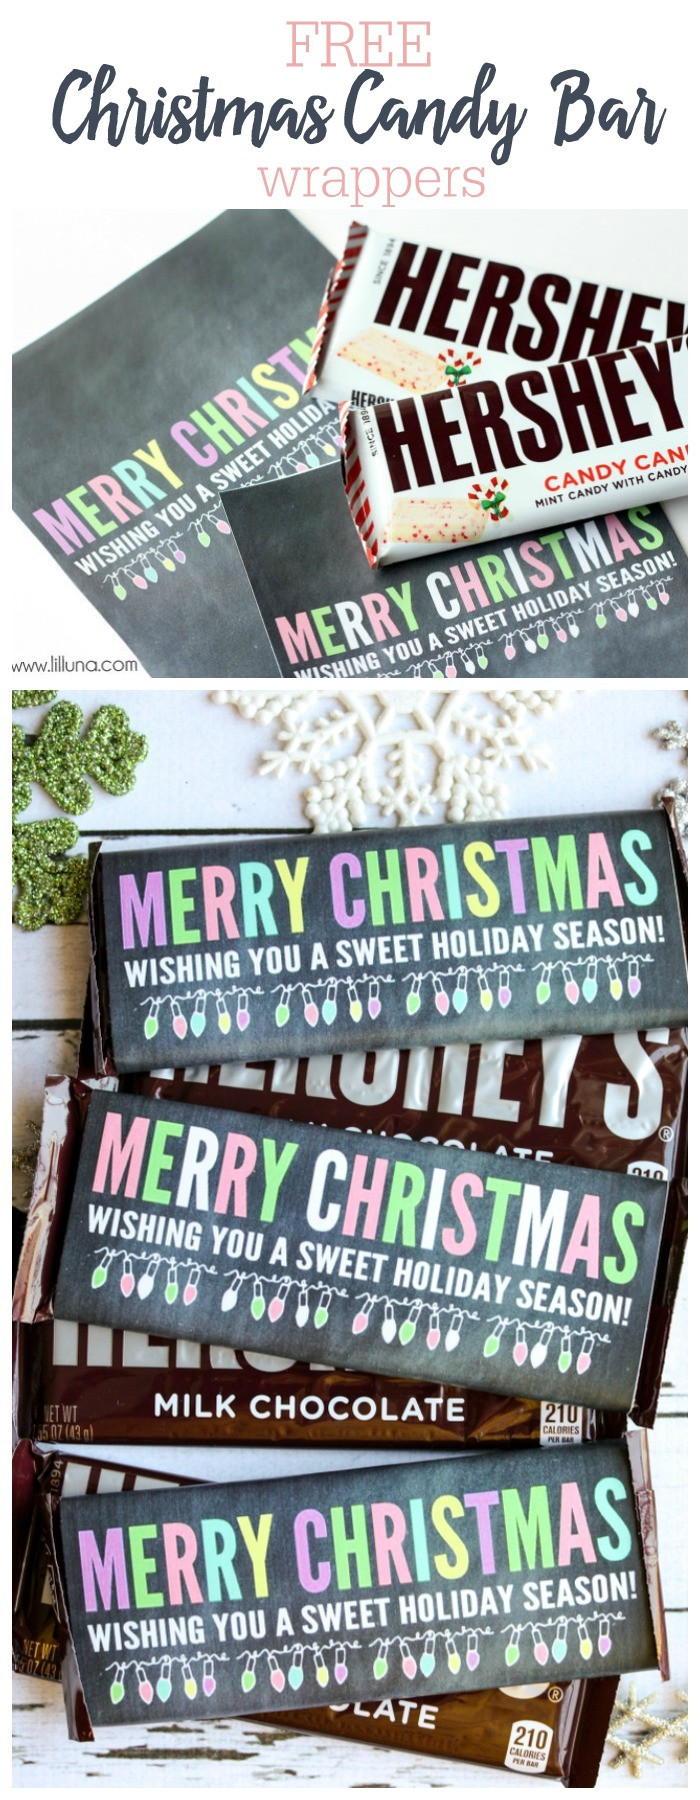 Christmas Candy Wrappers  Merry Christmas Candy Bar Wrappers